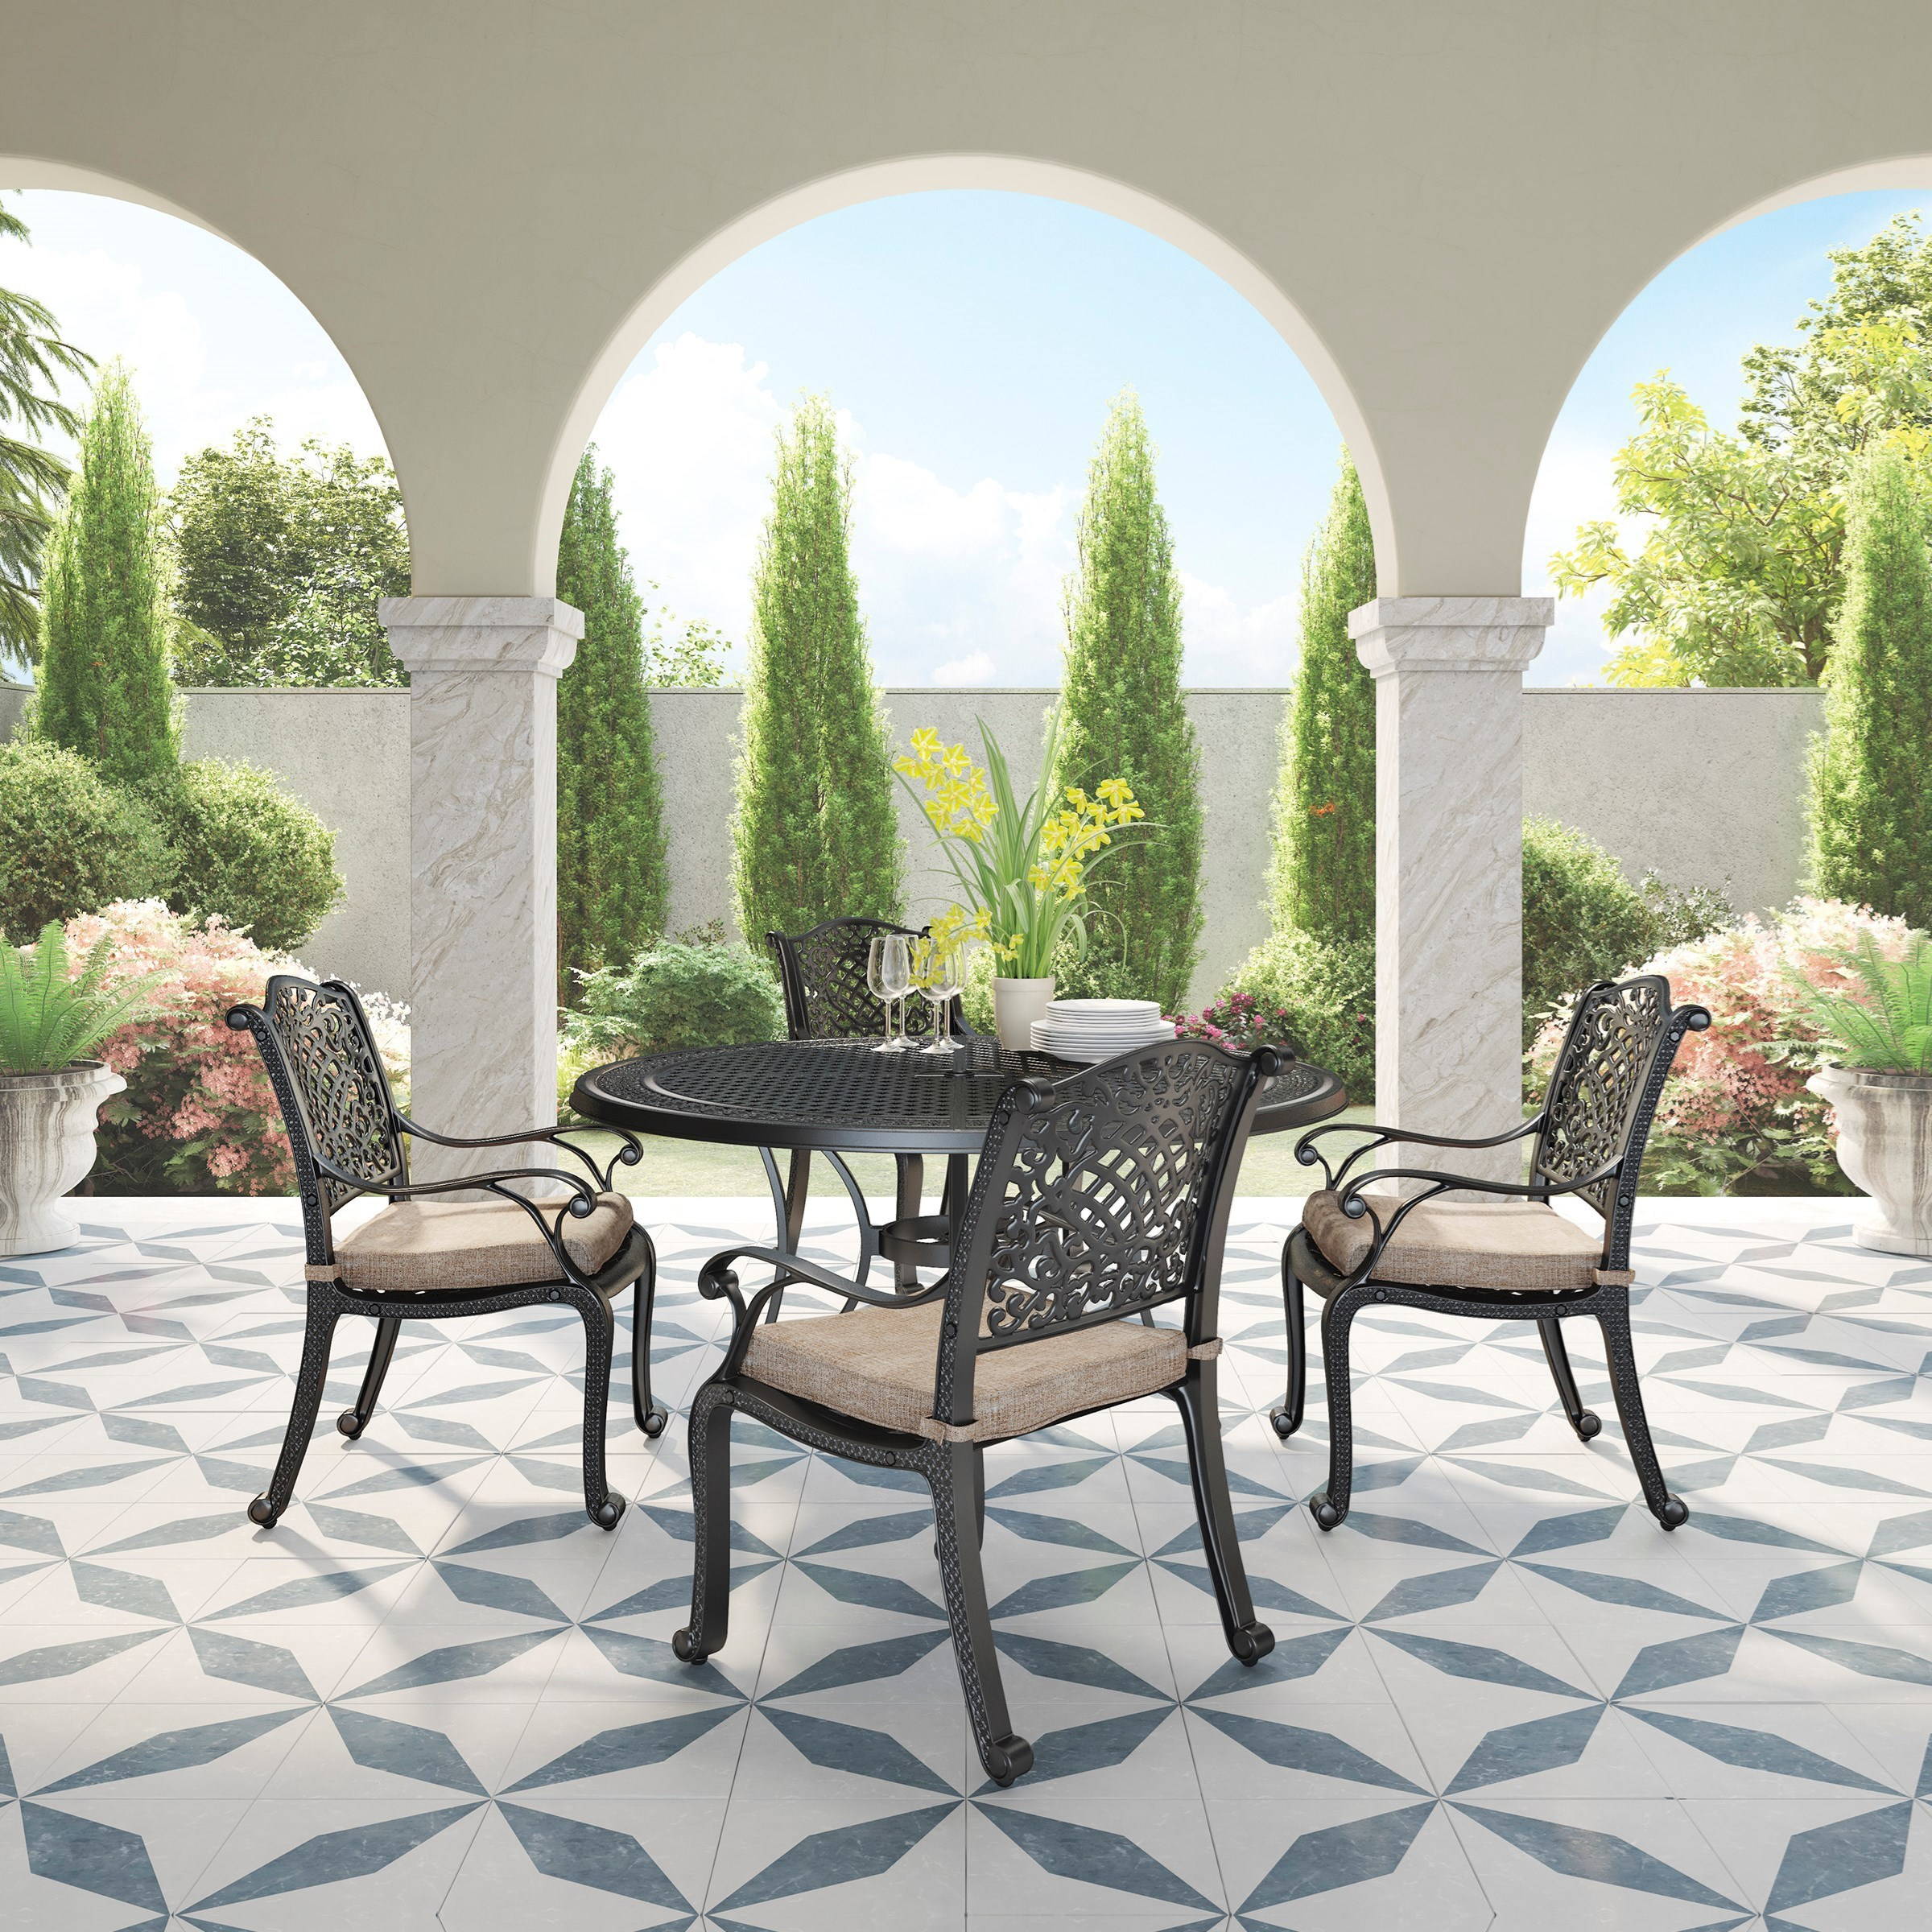 Rose View 5 Piece Outdoor Dining Set by Signature Design by Ashley at Lapeer Furniture & Mattress Center